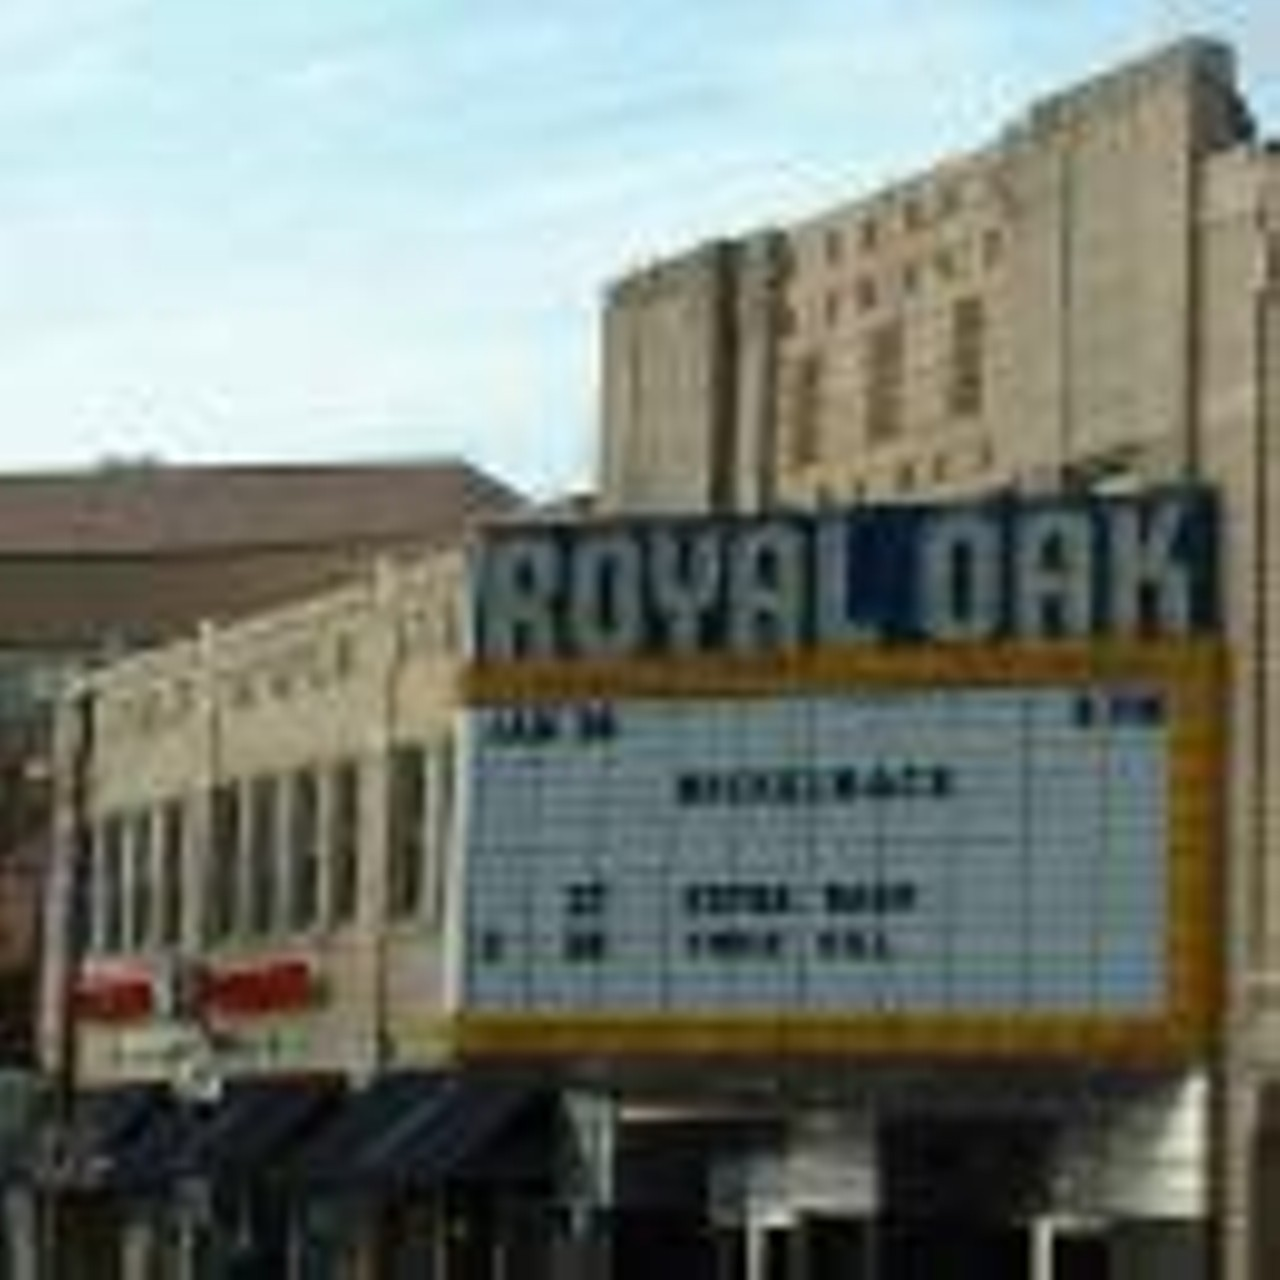 Royal Oak Music Theatre Downtown Royal Oak Concert Hall